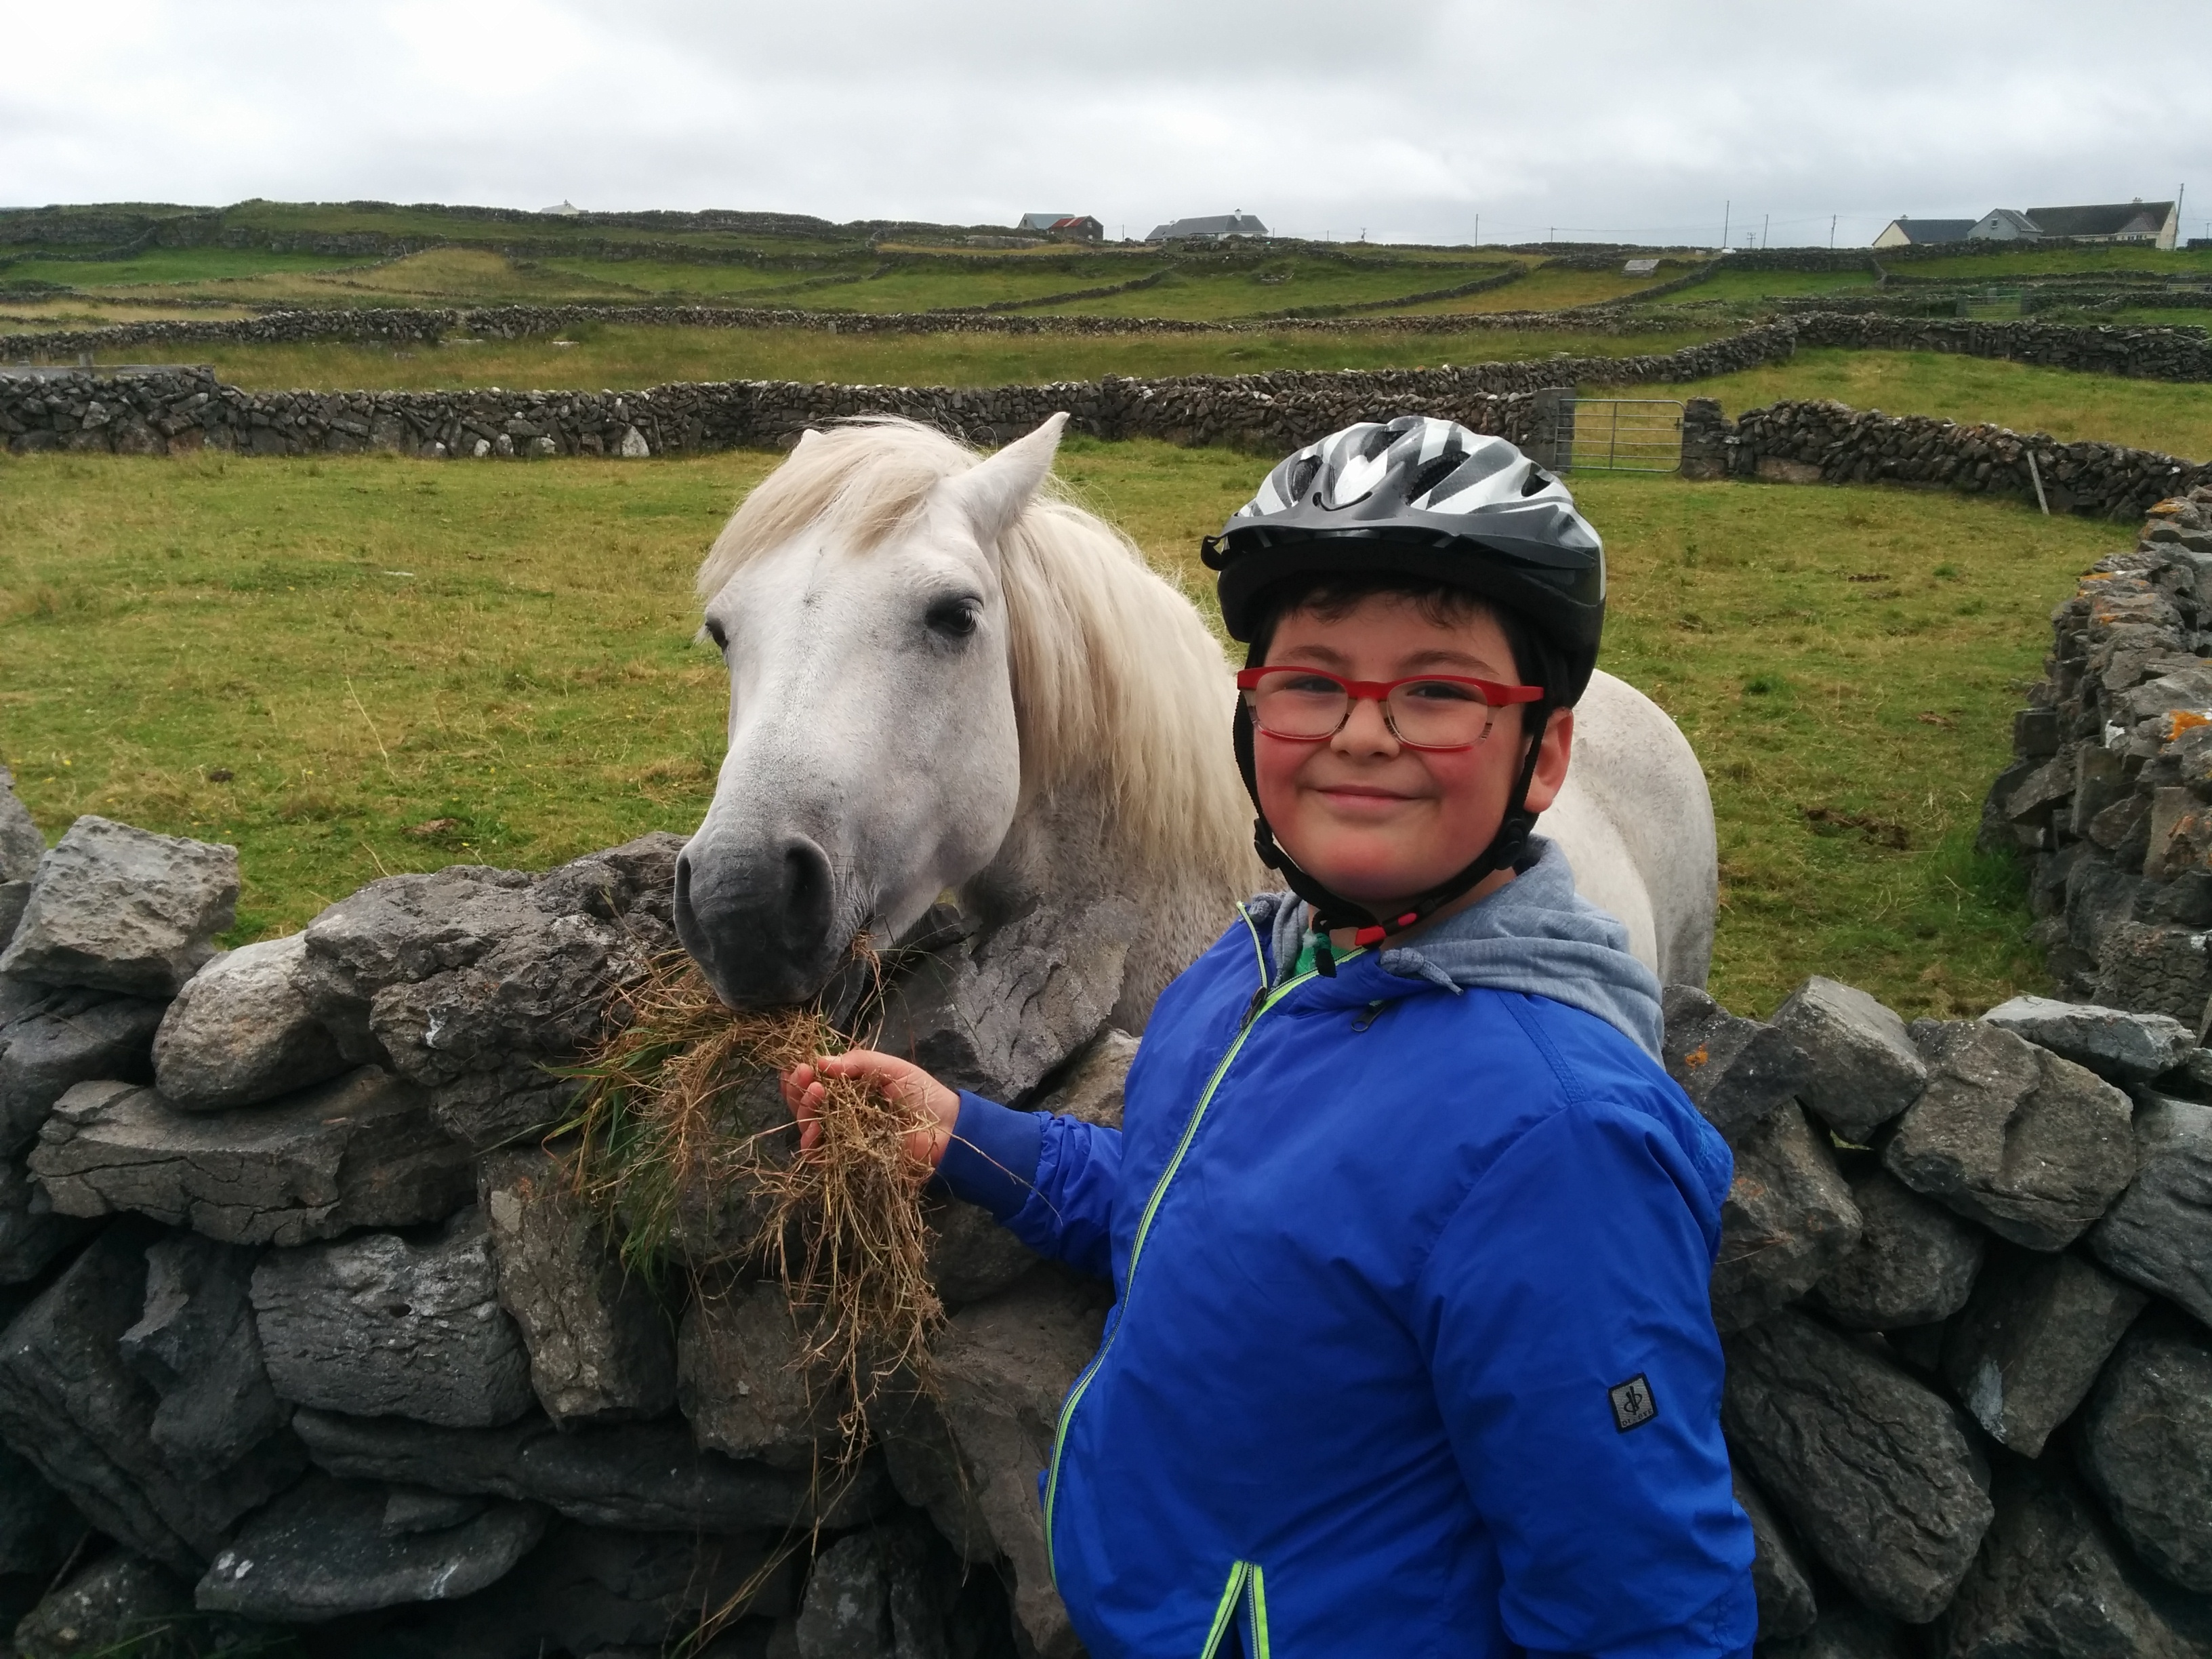 Eoghan Rincon enjoying life after learning English in Galway - Atlantic Language School